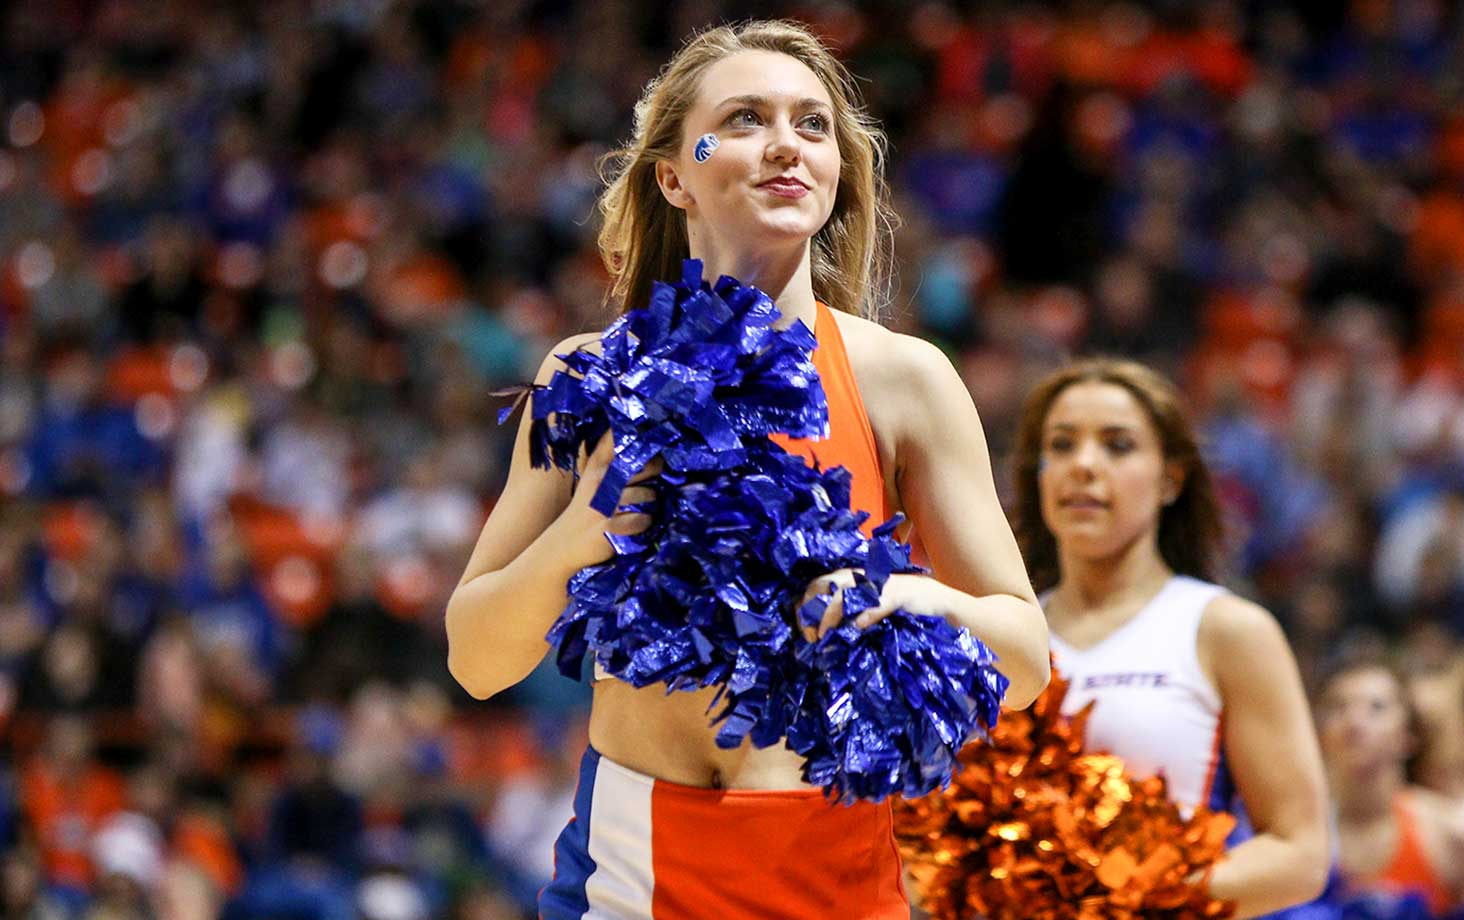 A Boise State Broncos cheerleader performs during action between the San Jose State Spartans and the Broncos at Taco Bell Arena in Boise, Idaho. Boise State won the game 94-69.